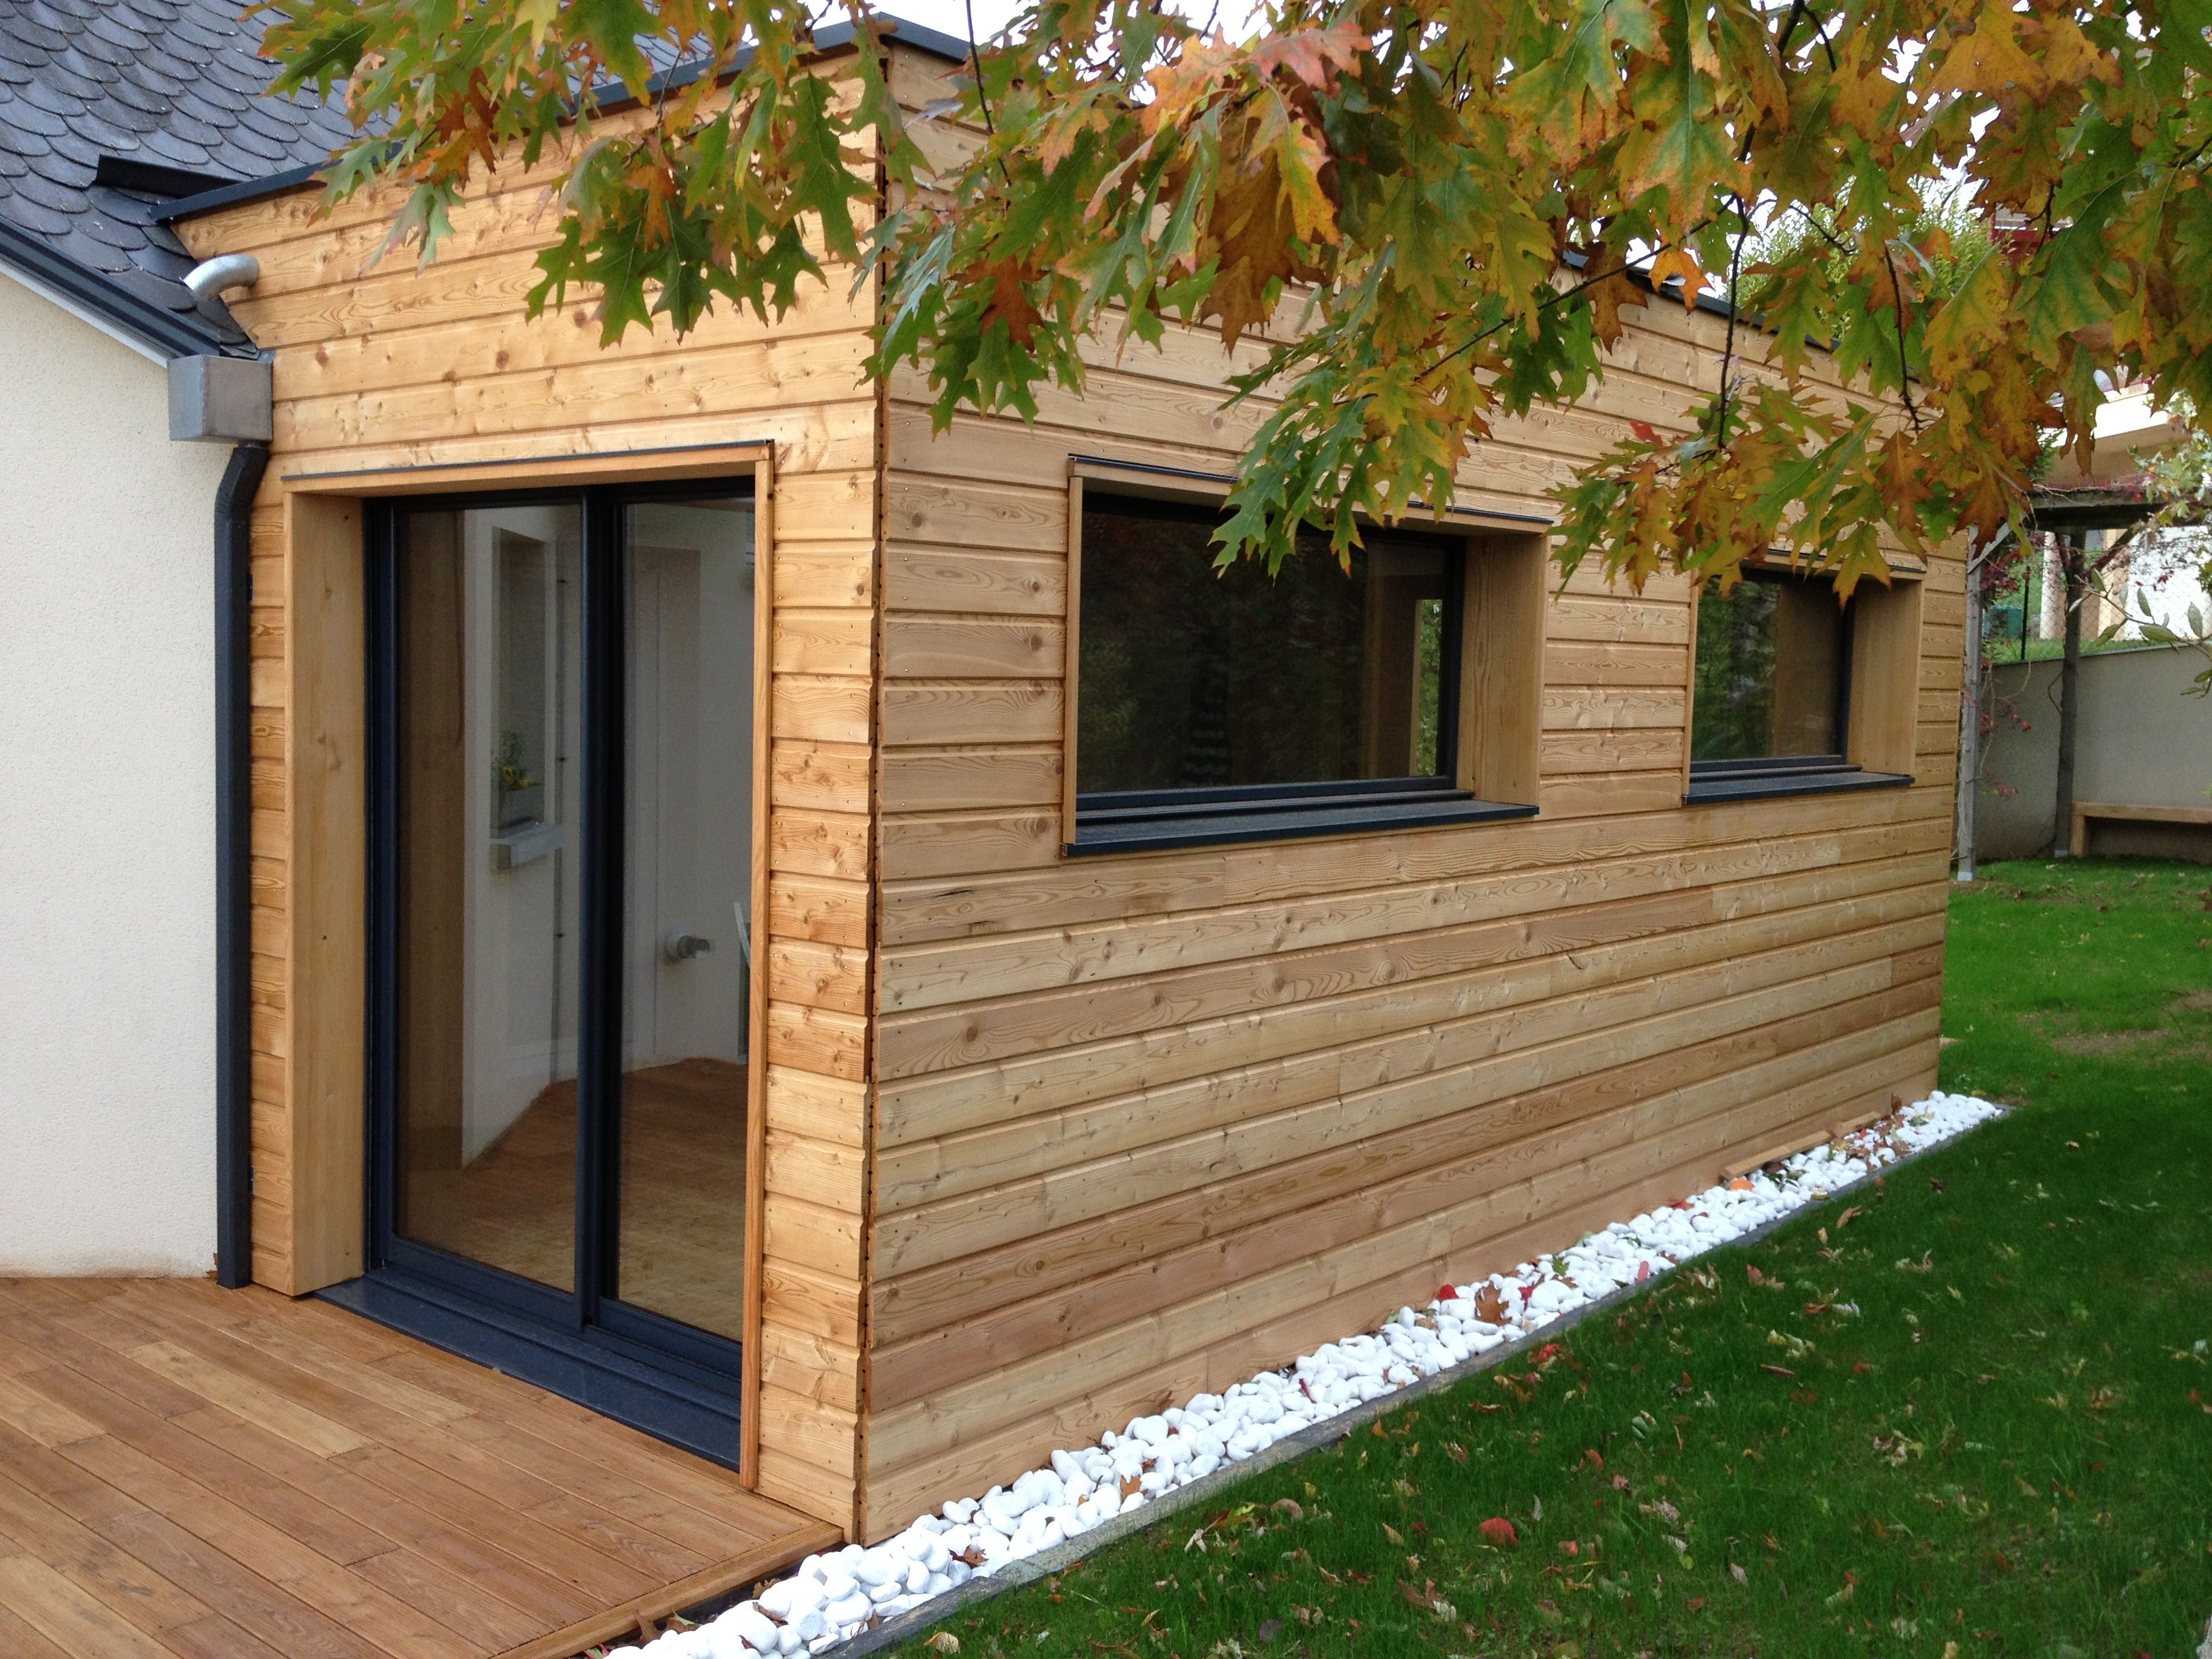 Les 25 meilleures id es de la cat gorie extension en bois for Extension sur terrasse